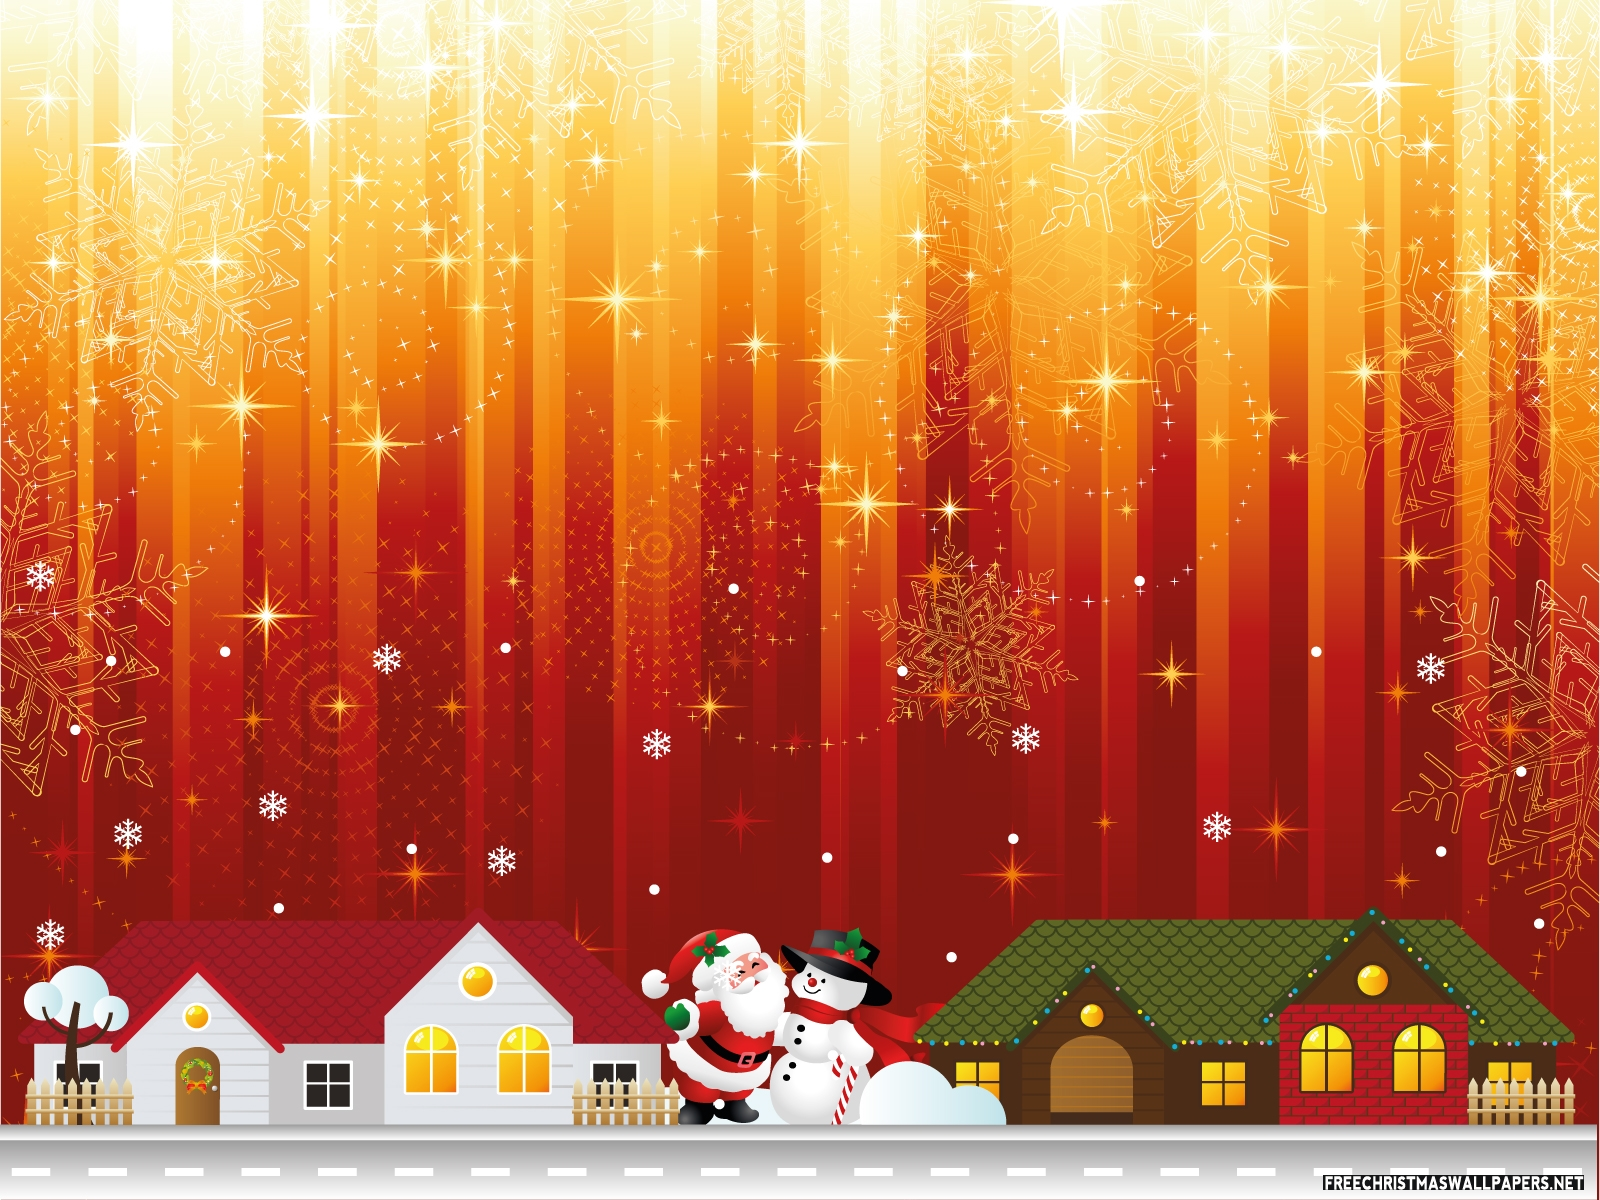 Christmas Background Hd.45 New Free Collection Of Hd Christmas Wallpapers Psdreview